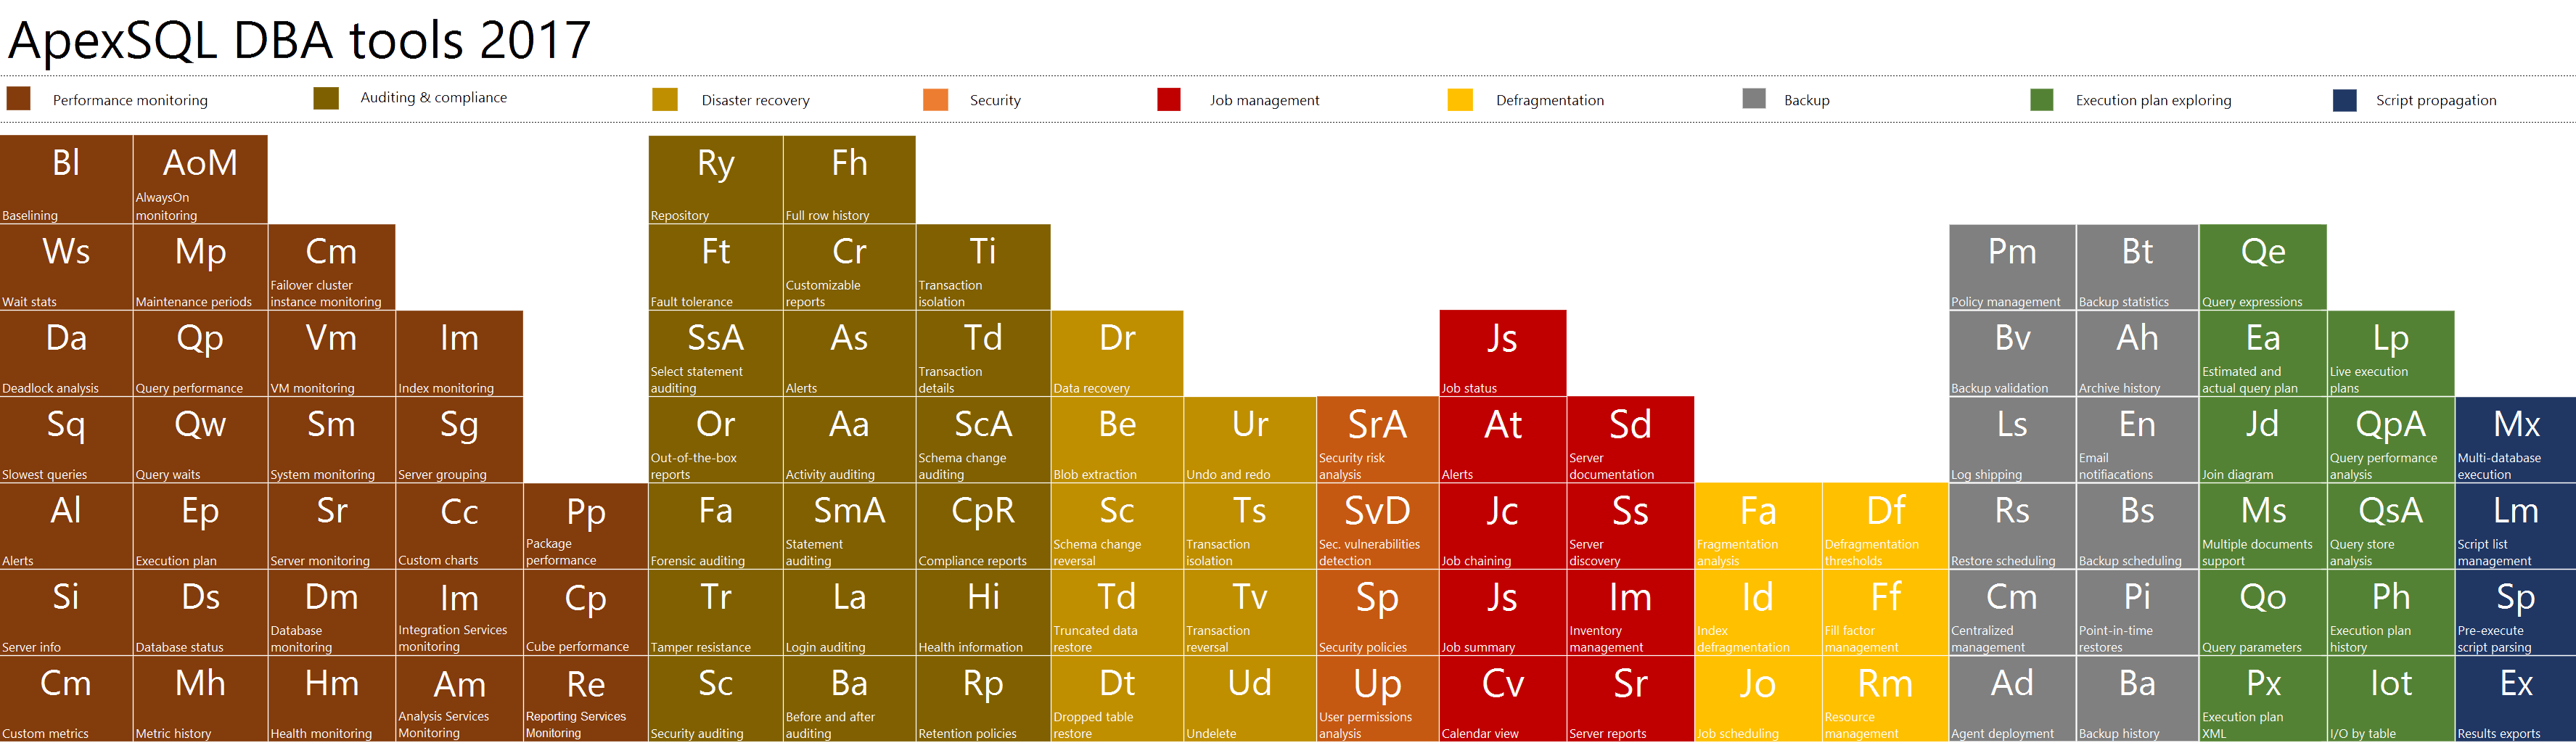 Periodic table of ApexSQL DBA 2017